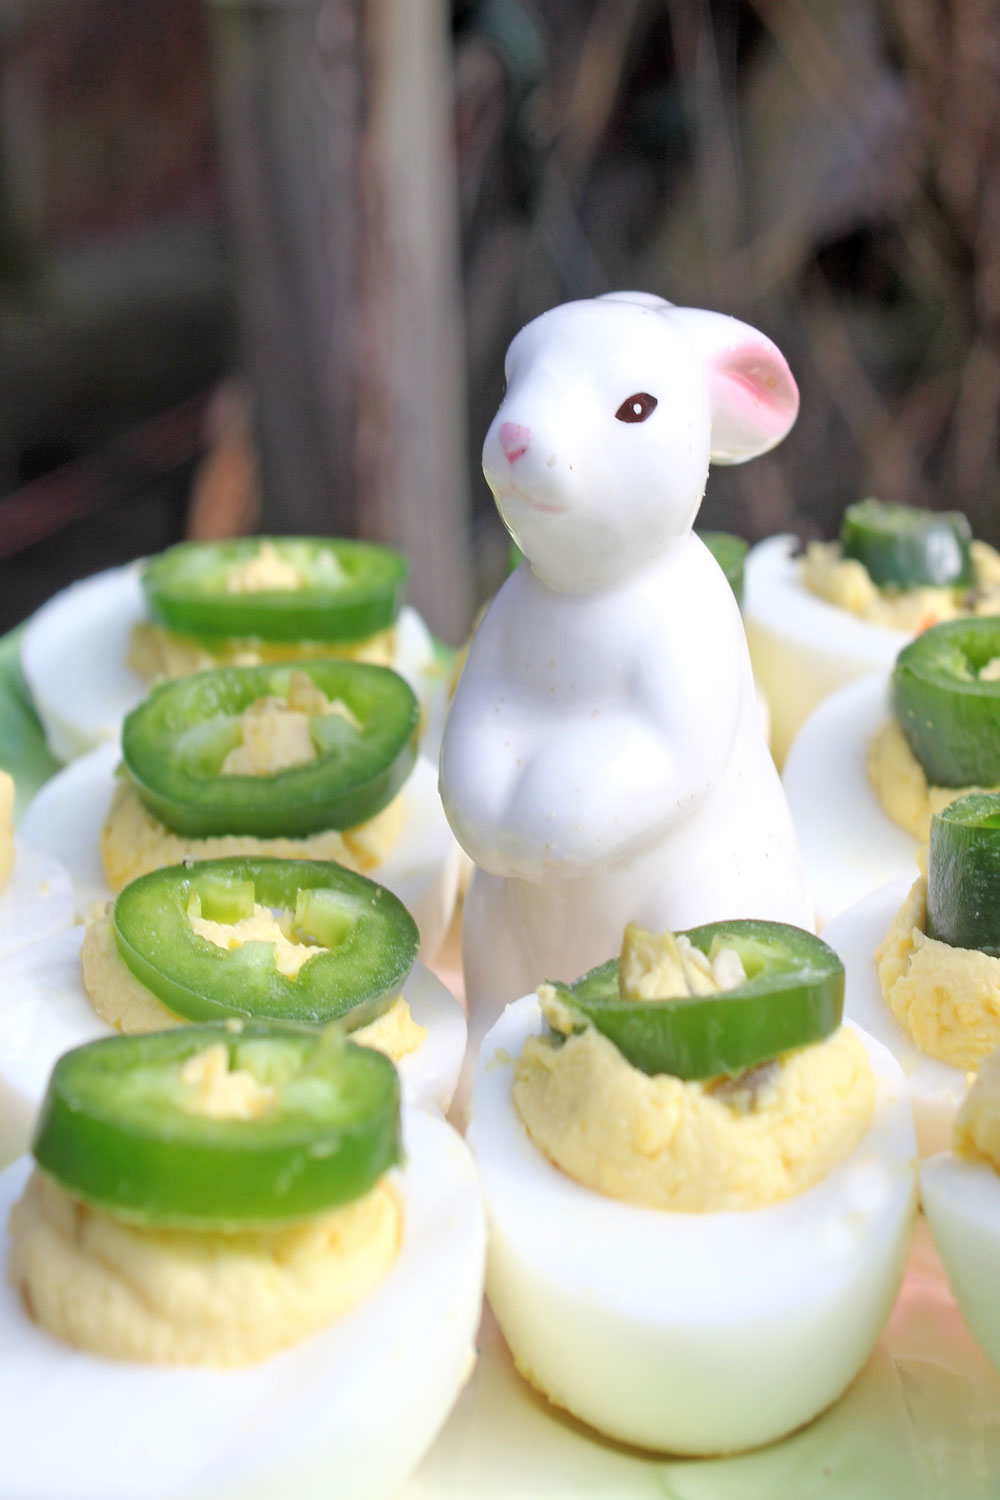 Presentation of Jalapeno Deviled Eggs for party appetizers